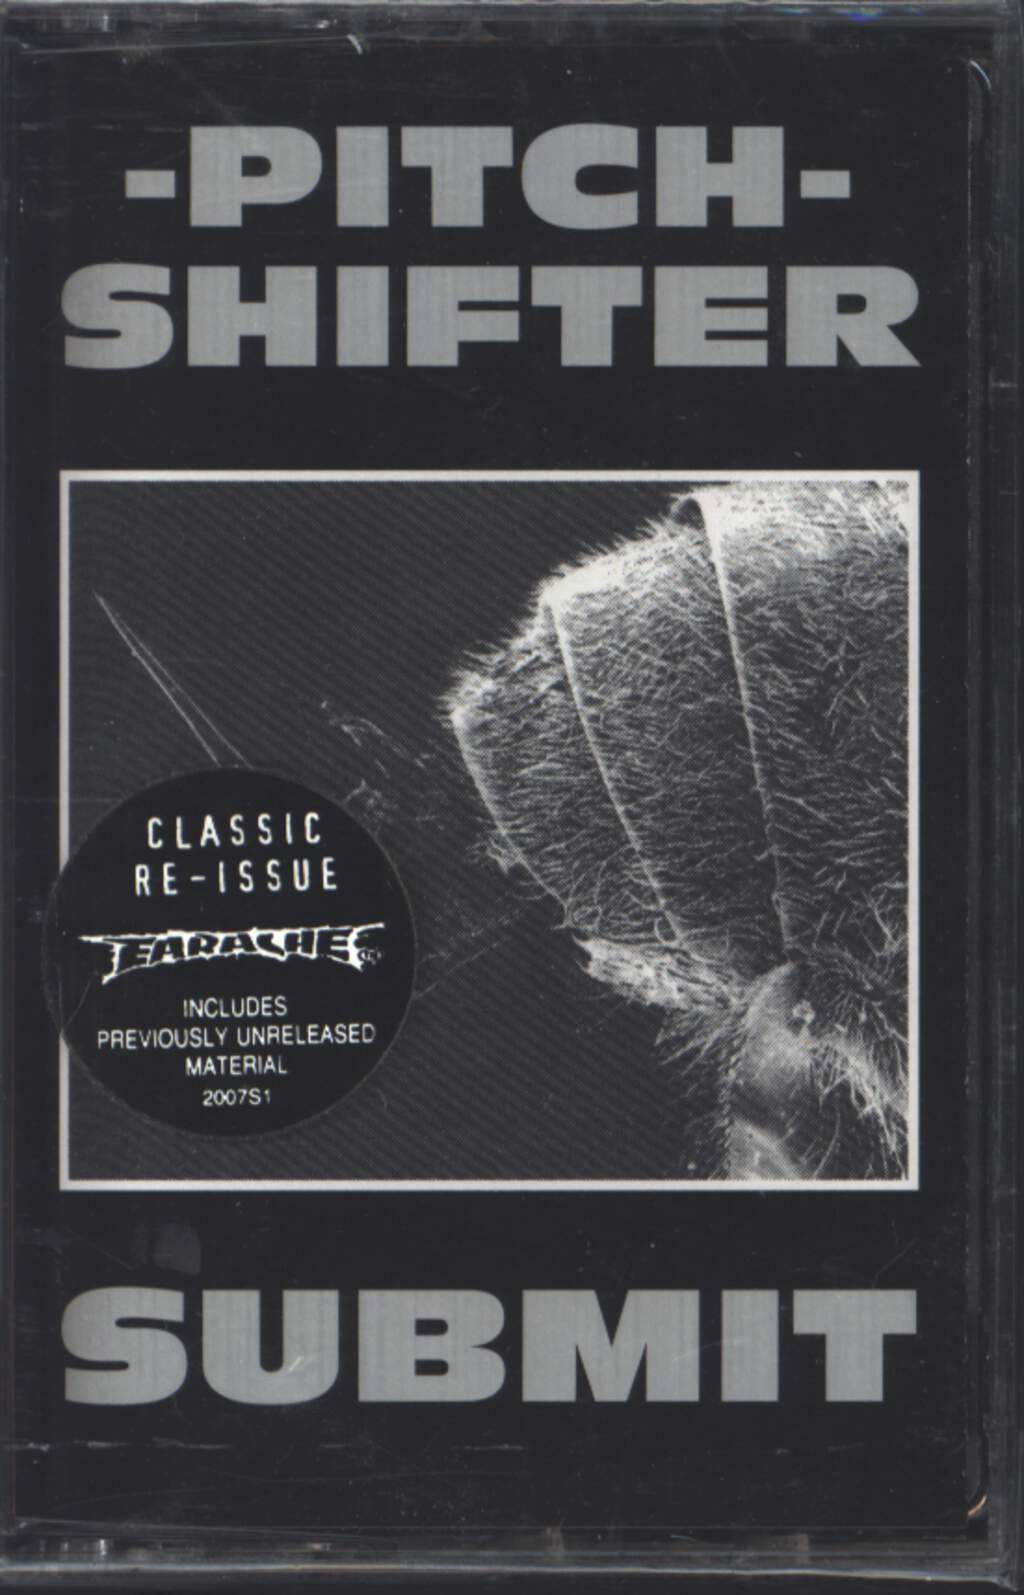 Pitchshifter: Submit, Compact Cassette